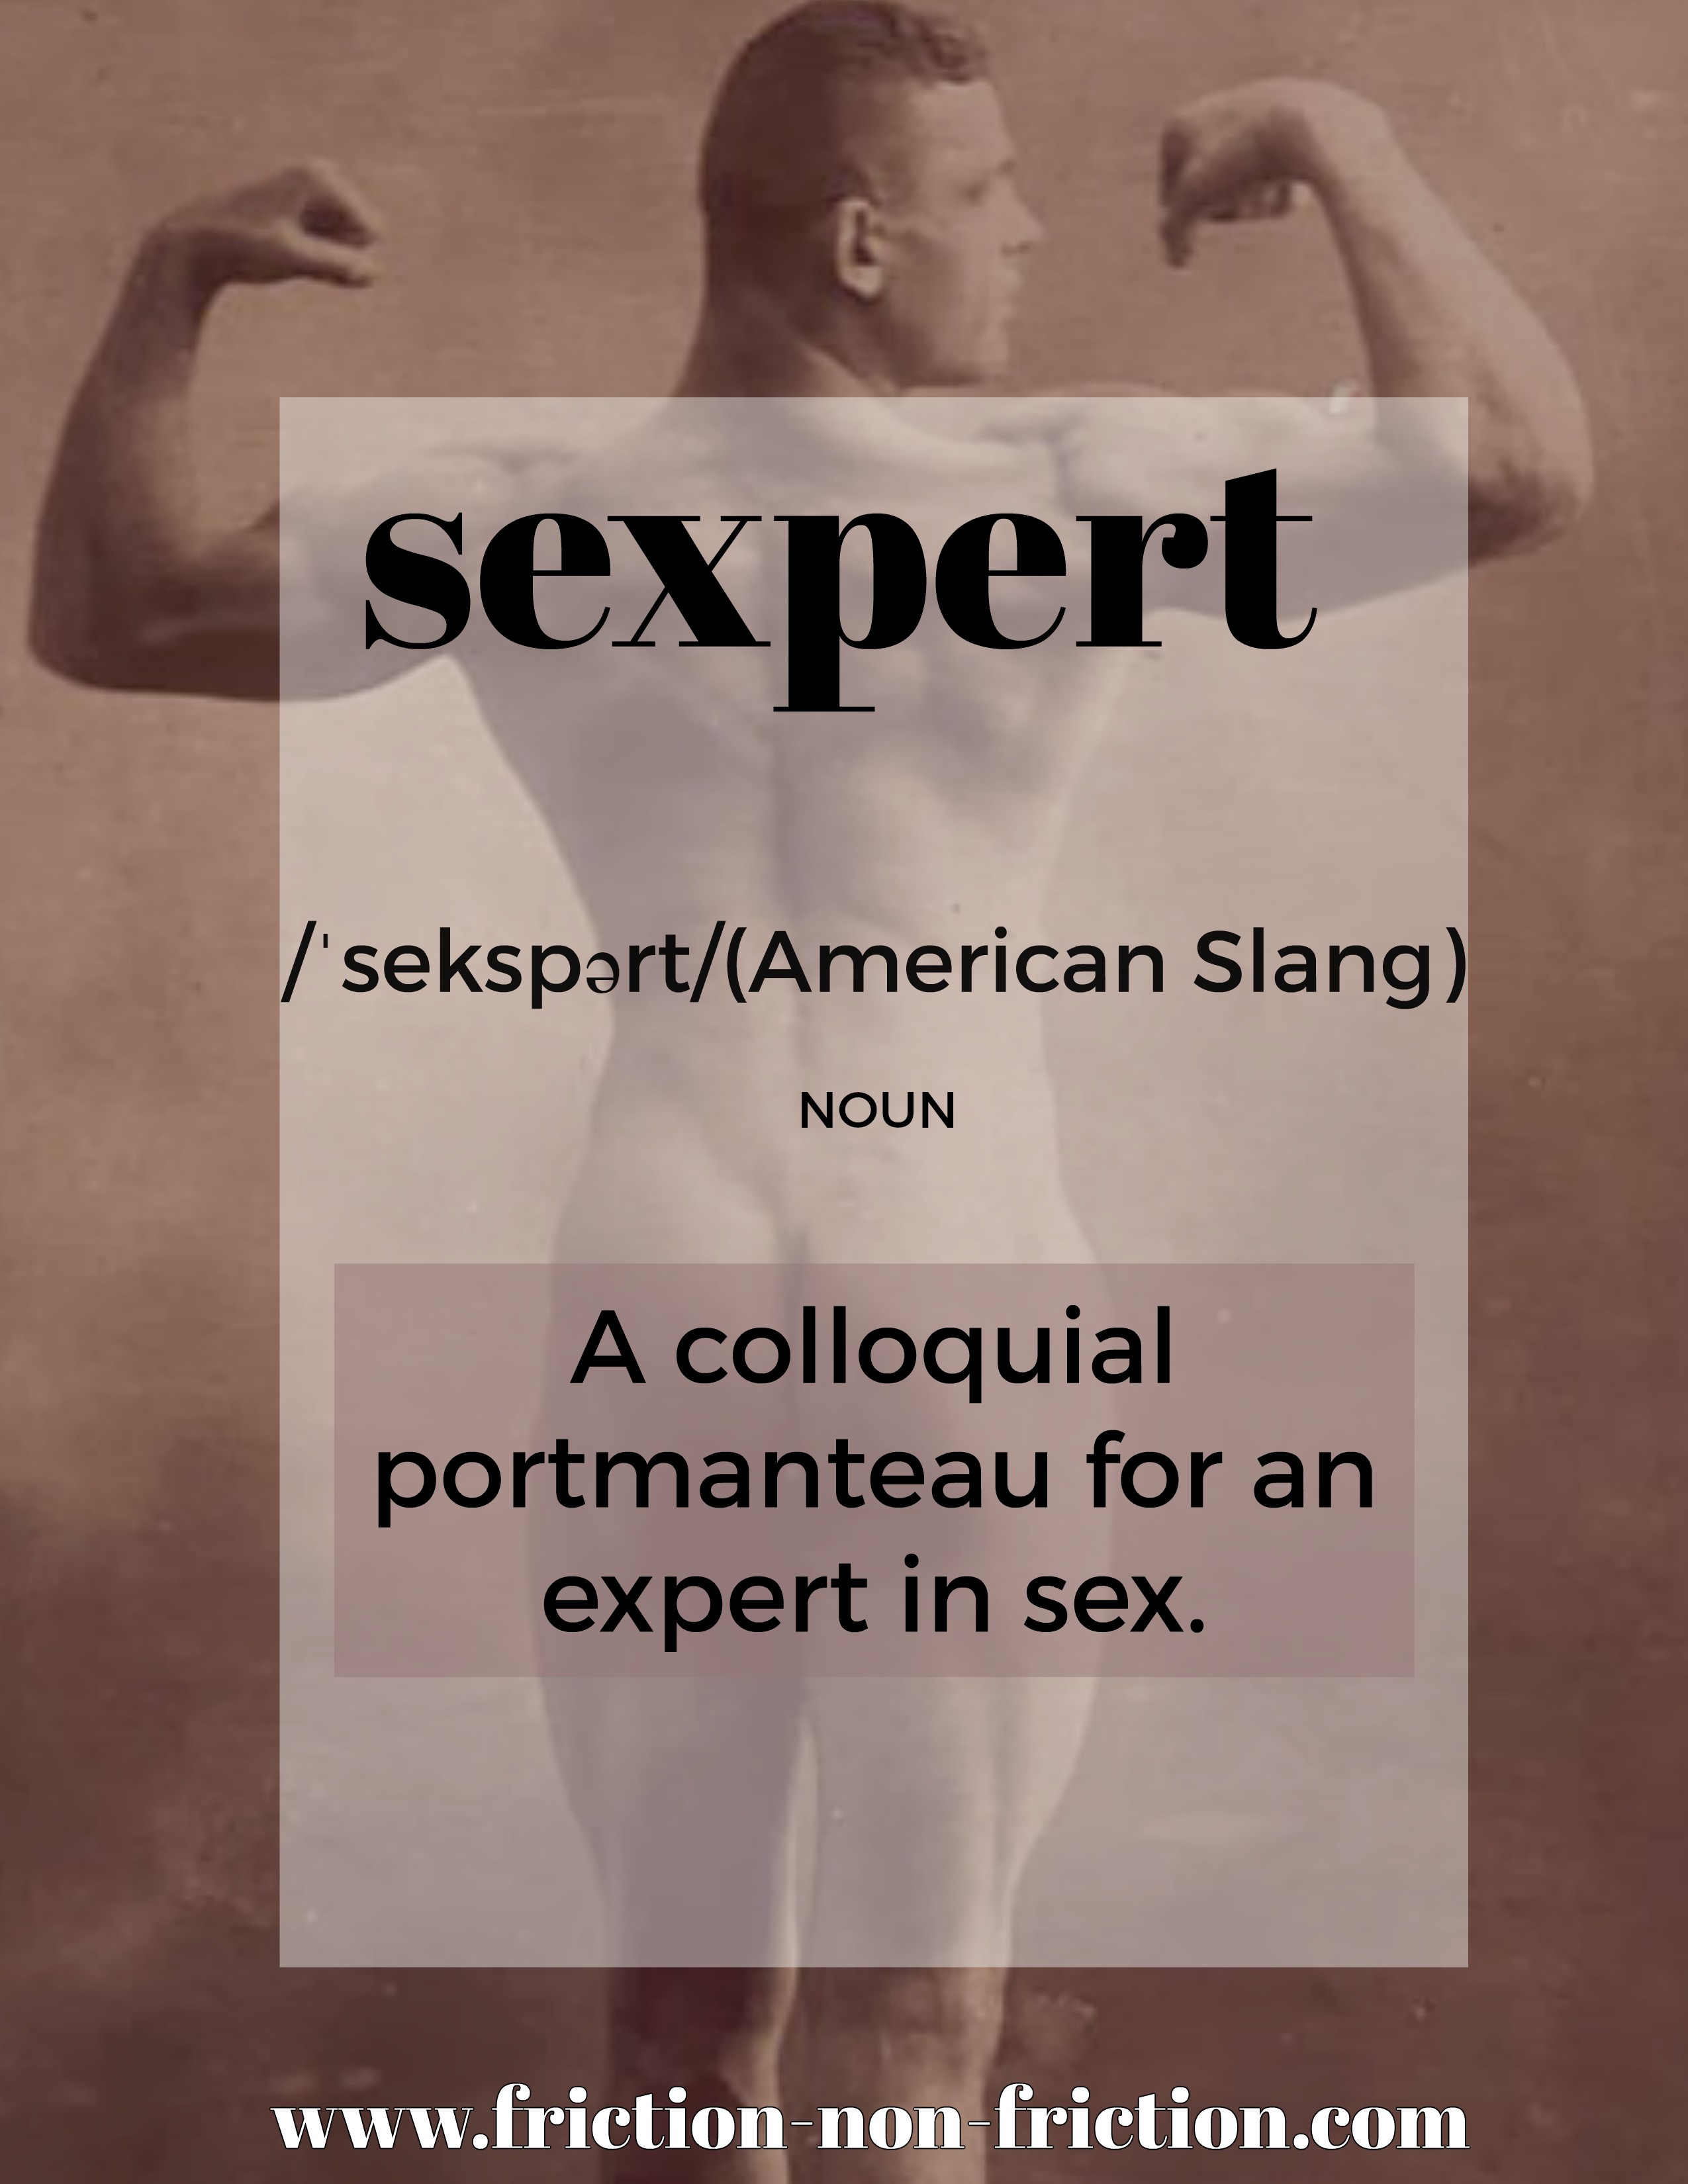 Sexpert -- another great FRICTIONARY definition from Friction|non|Friction